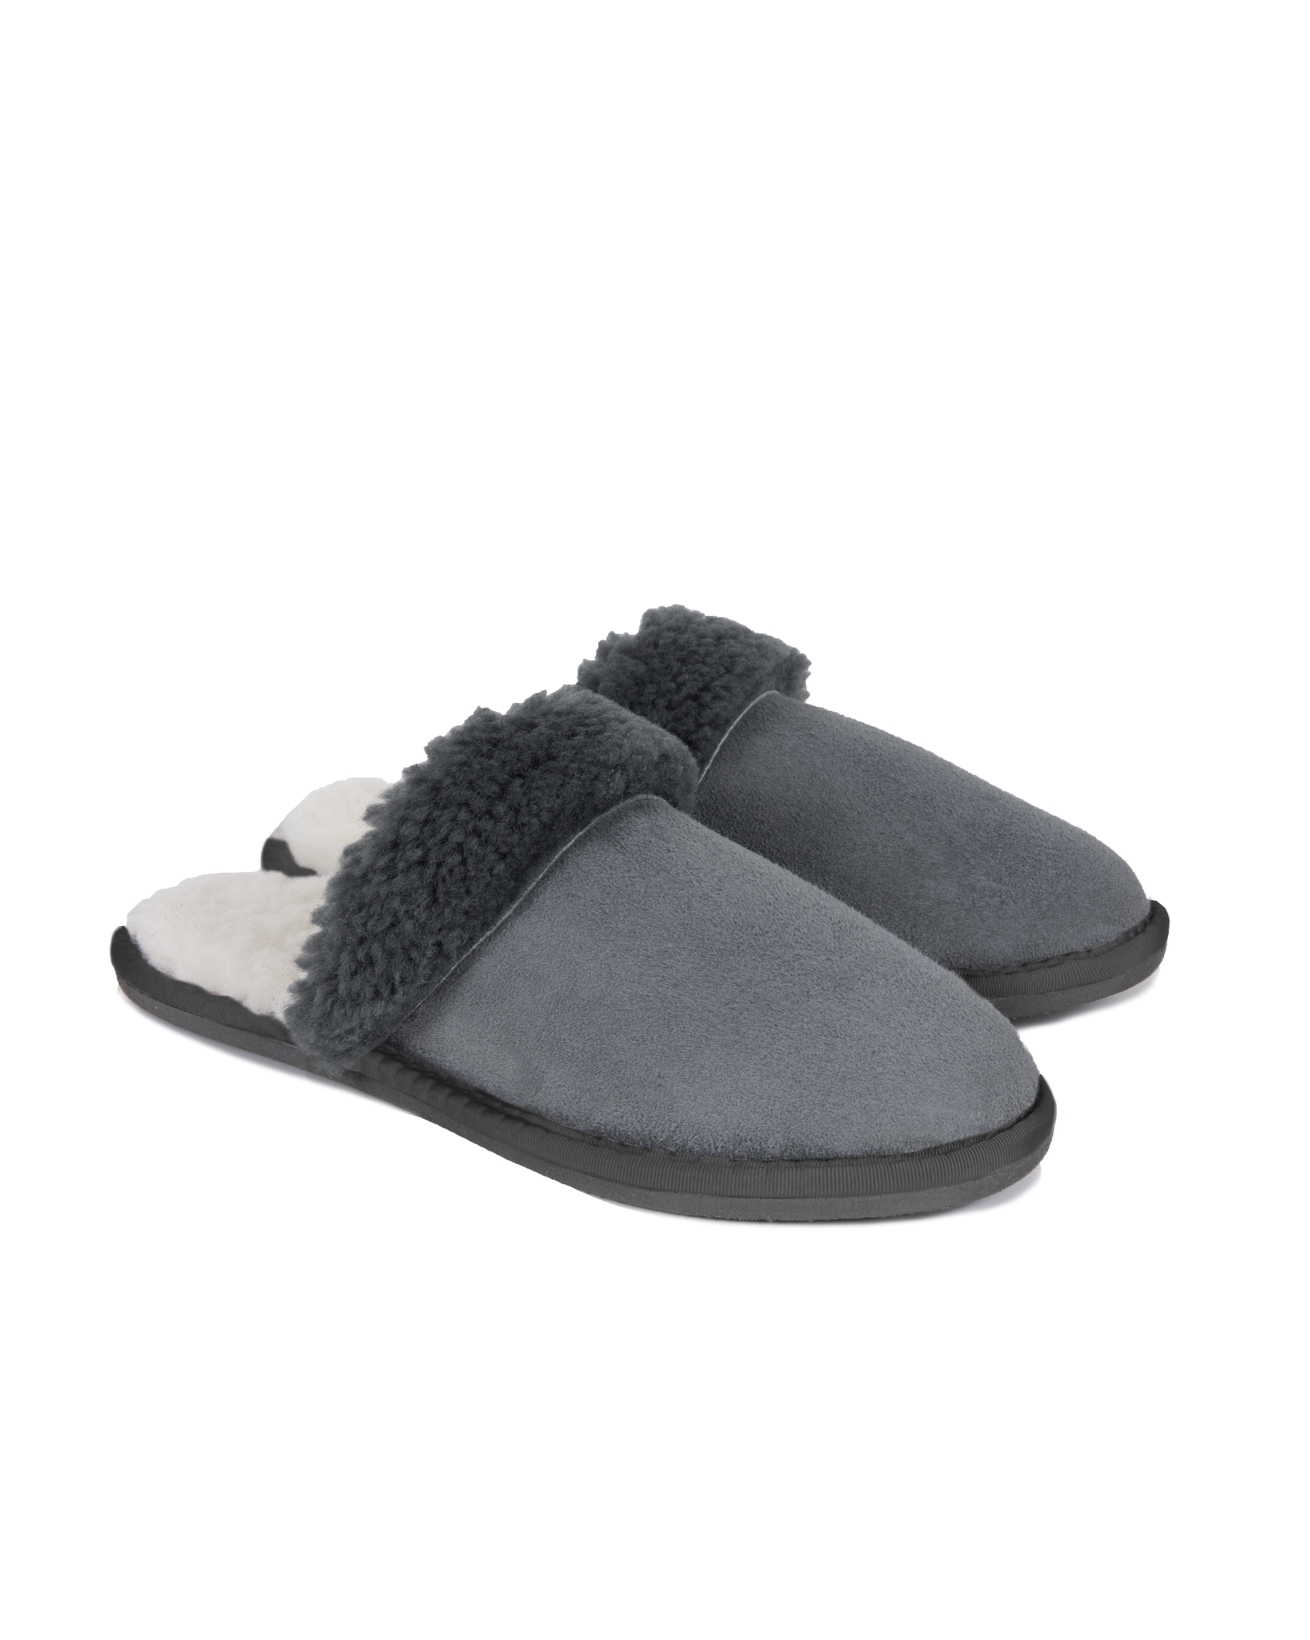 Ladies' Turnback Mules - Size 5 - Dark Grey - 1531